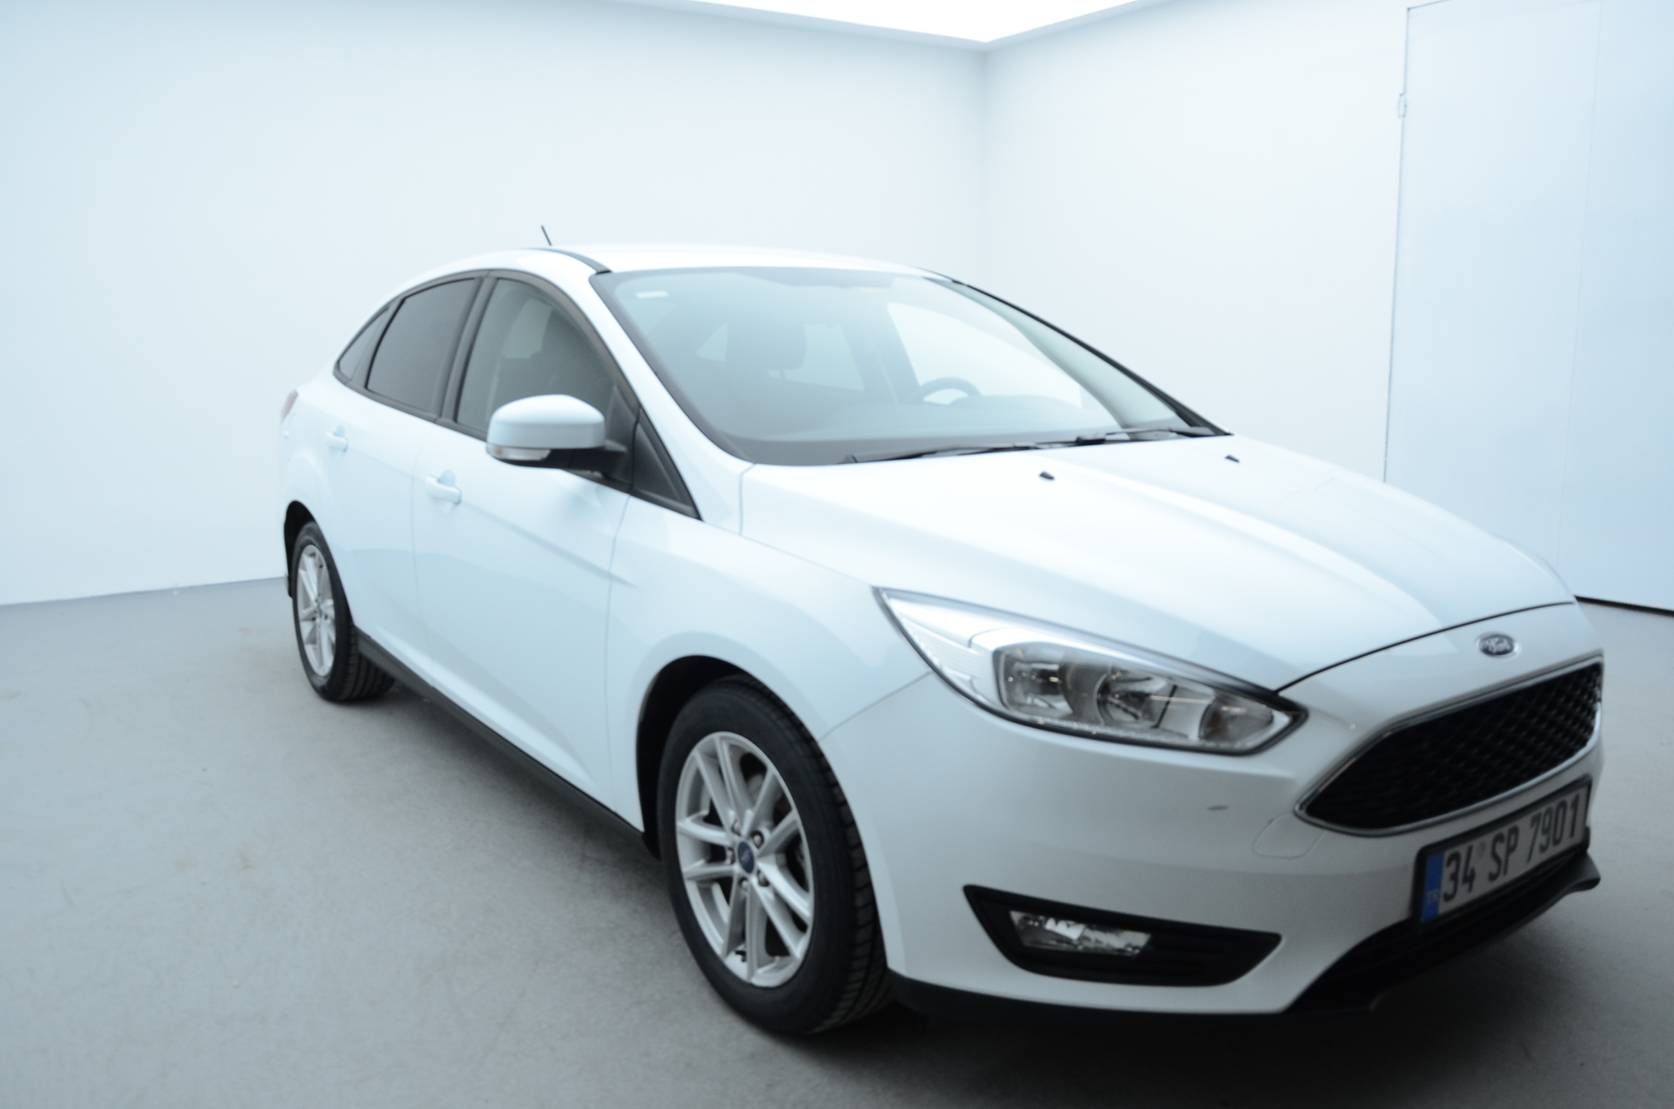 Ford Focus 1.5 TDCi DPF Start-Stopp-System Aut., Trend X detail2